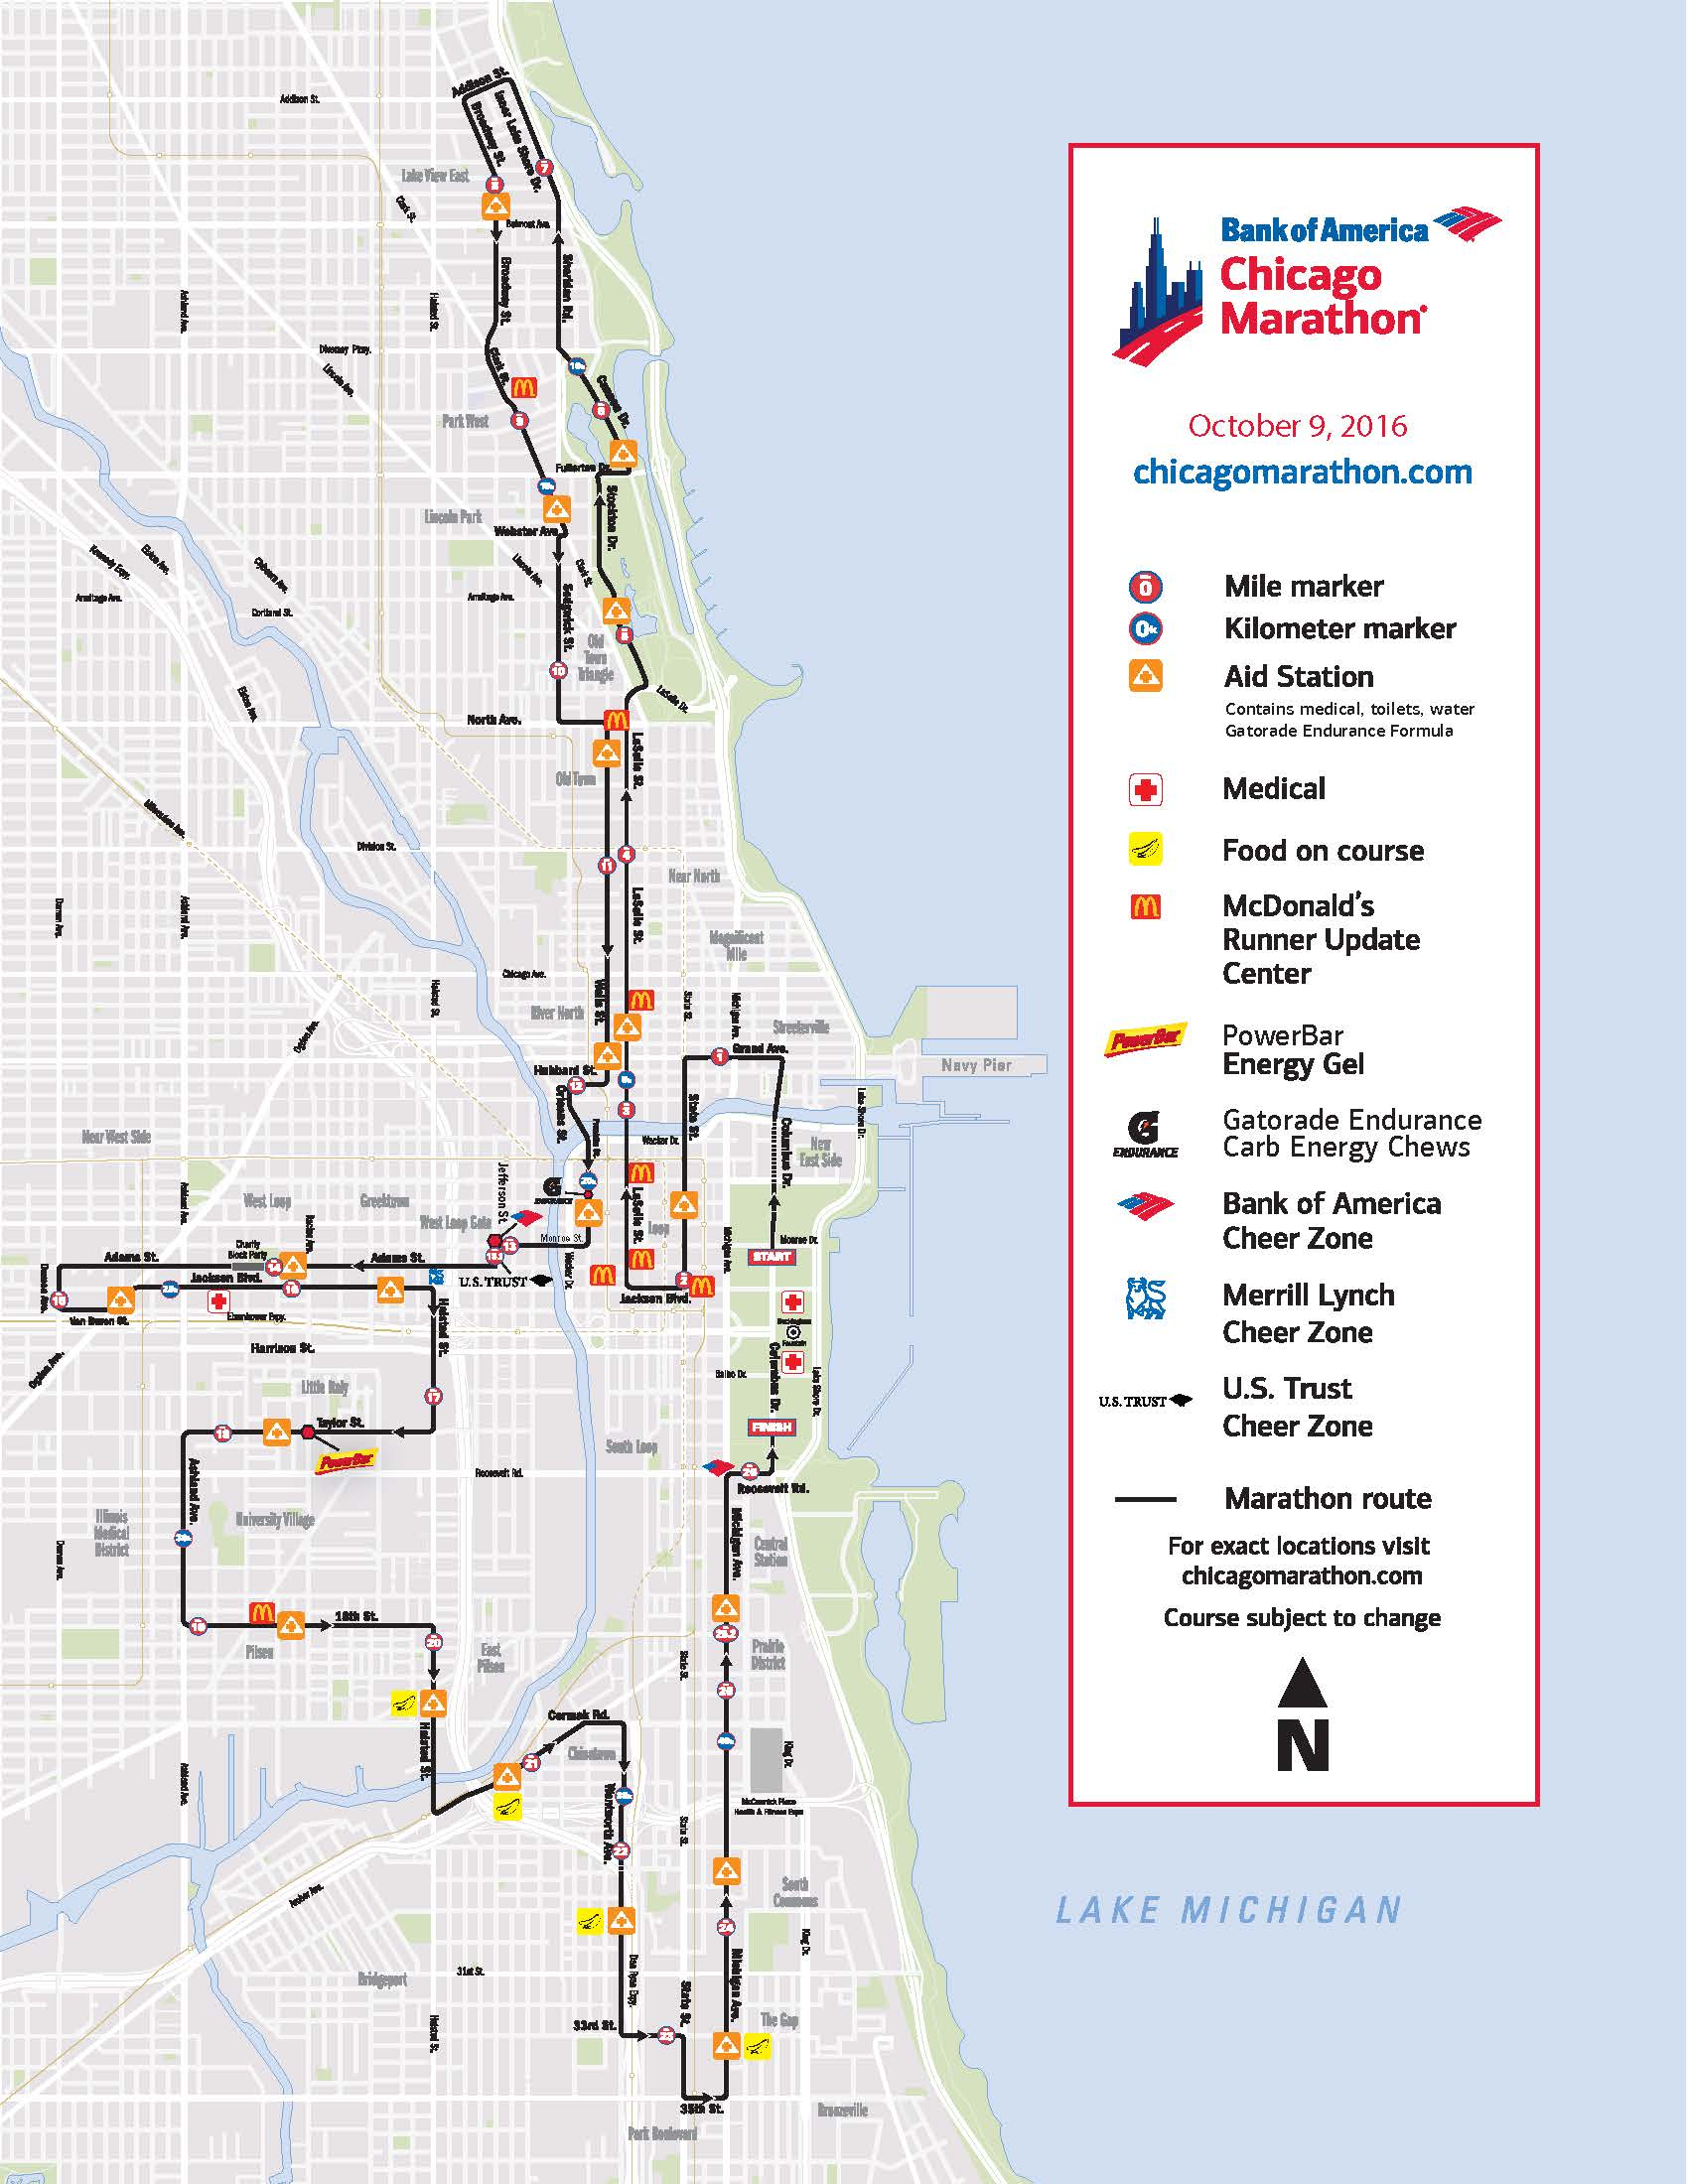 chicago marathon 2016 street closures | chicago association